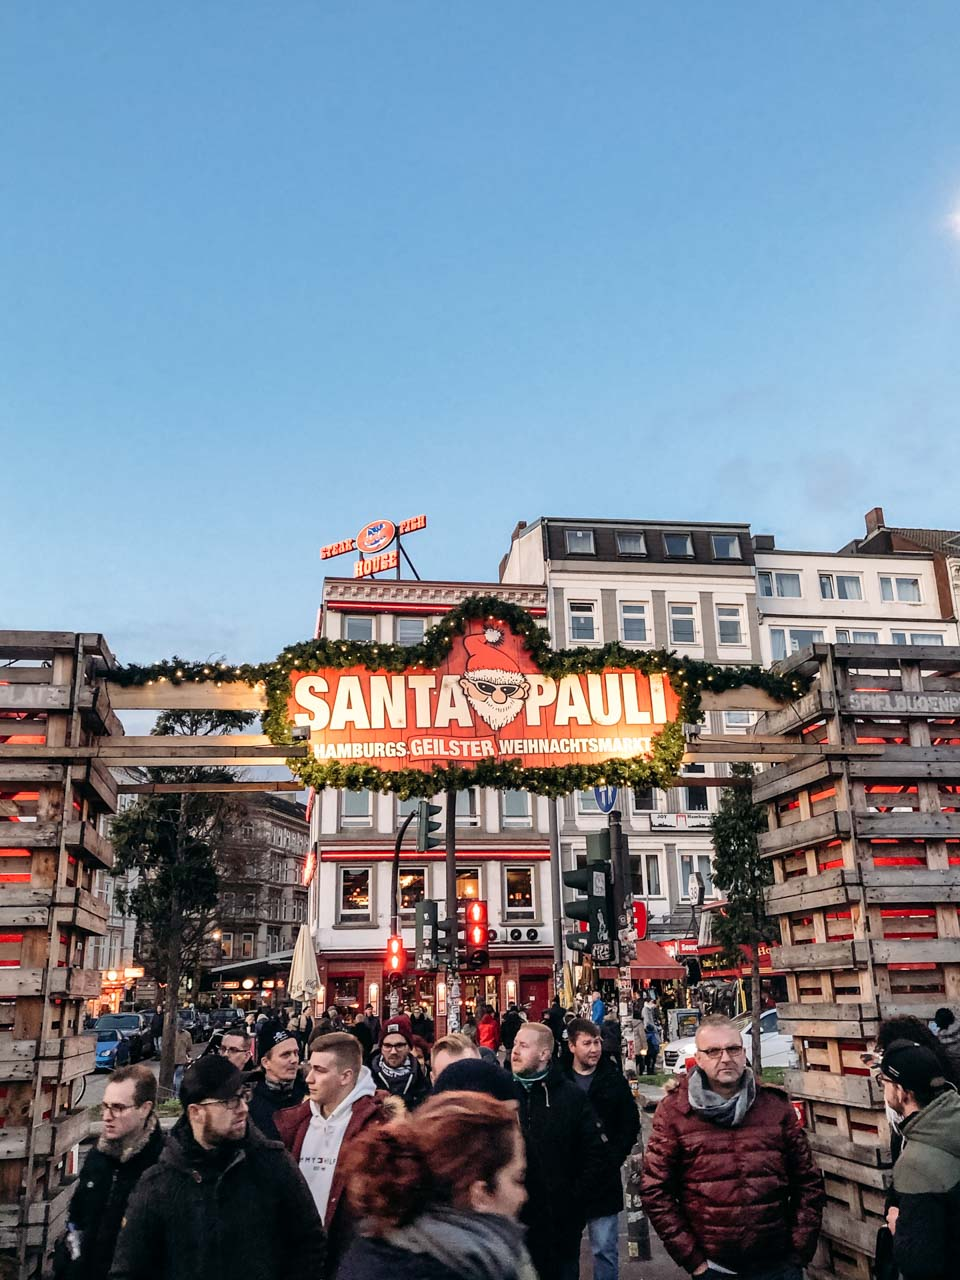 People at the St. Pauli Christmas market in Hamburg